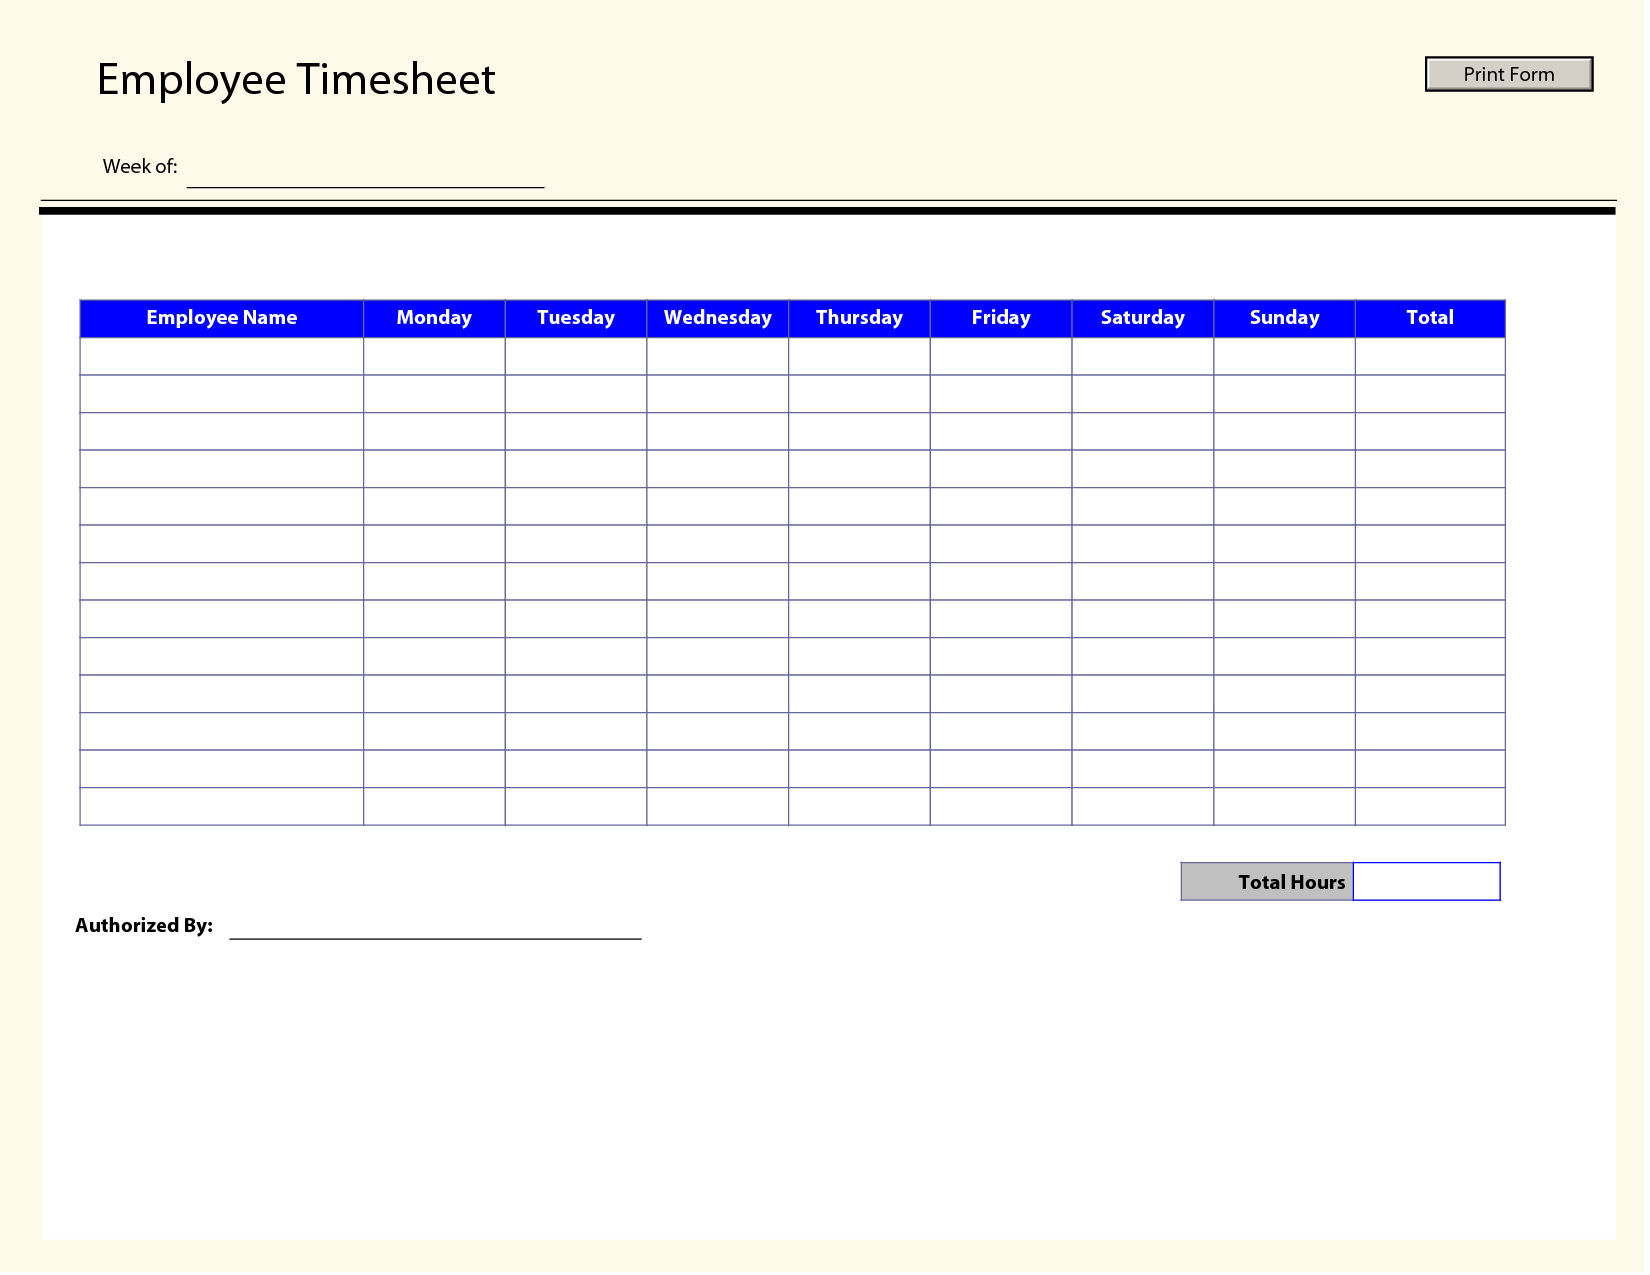 Blank Employee Timesheet Template | Management Templates | Timesheet - Free Printable Time Sheets Forms